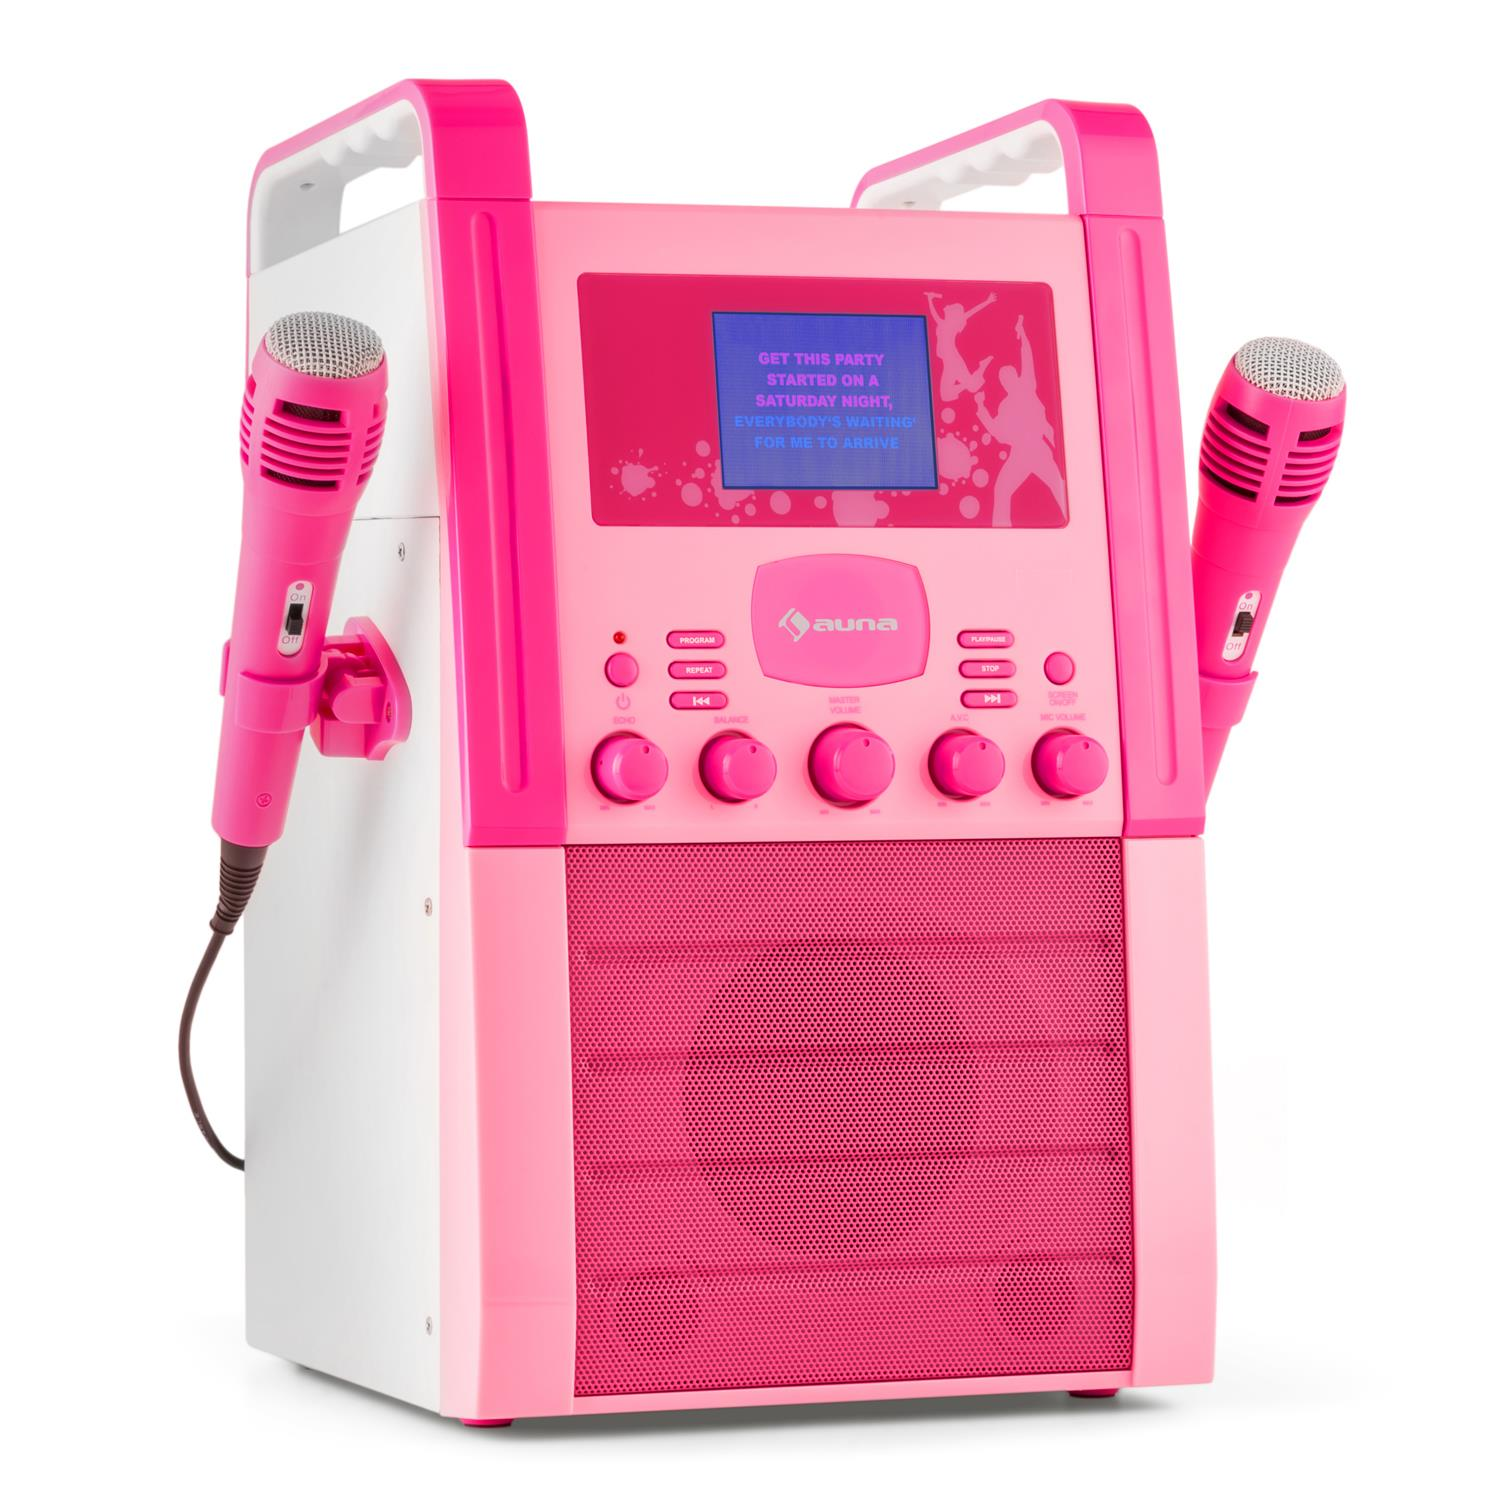 Karaoke-Ninas-Infantil-Portatil-Efecto-Eco-AUX-Reproductor-CD-Entrada-Video-Rosa